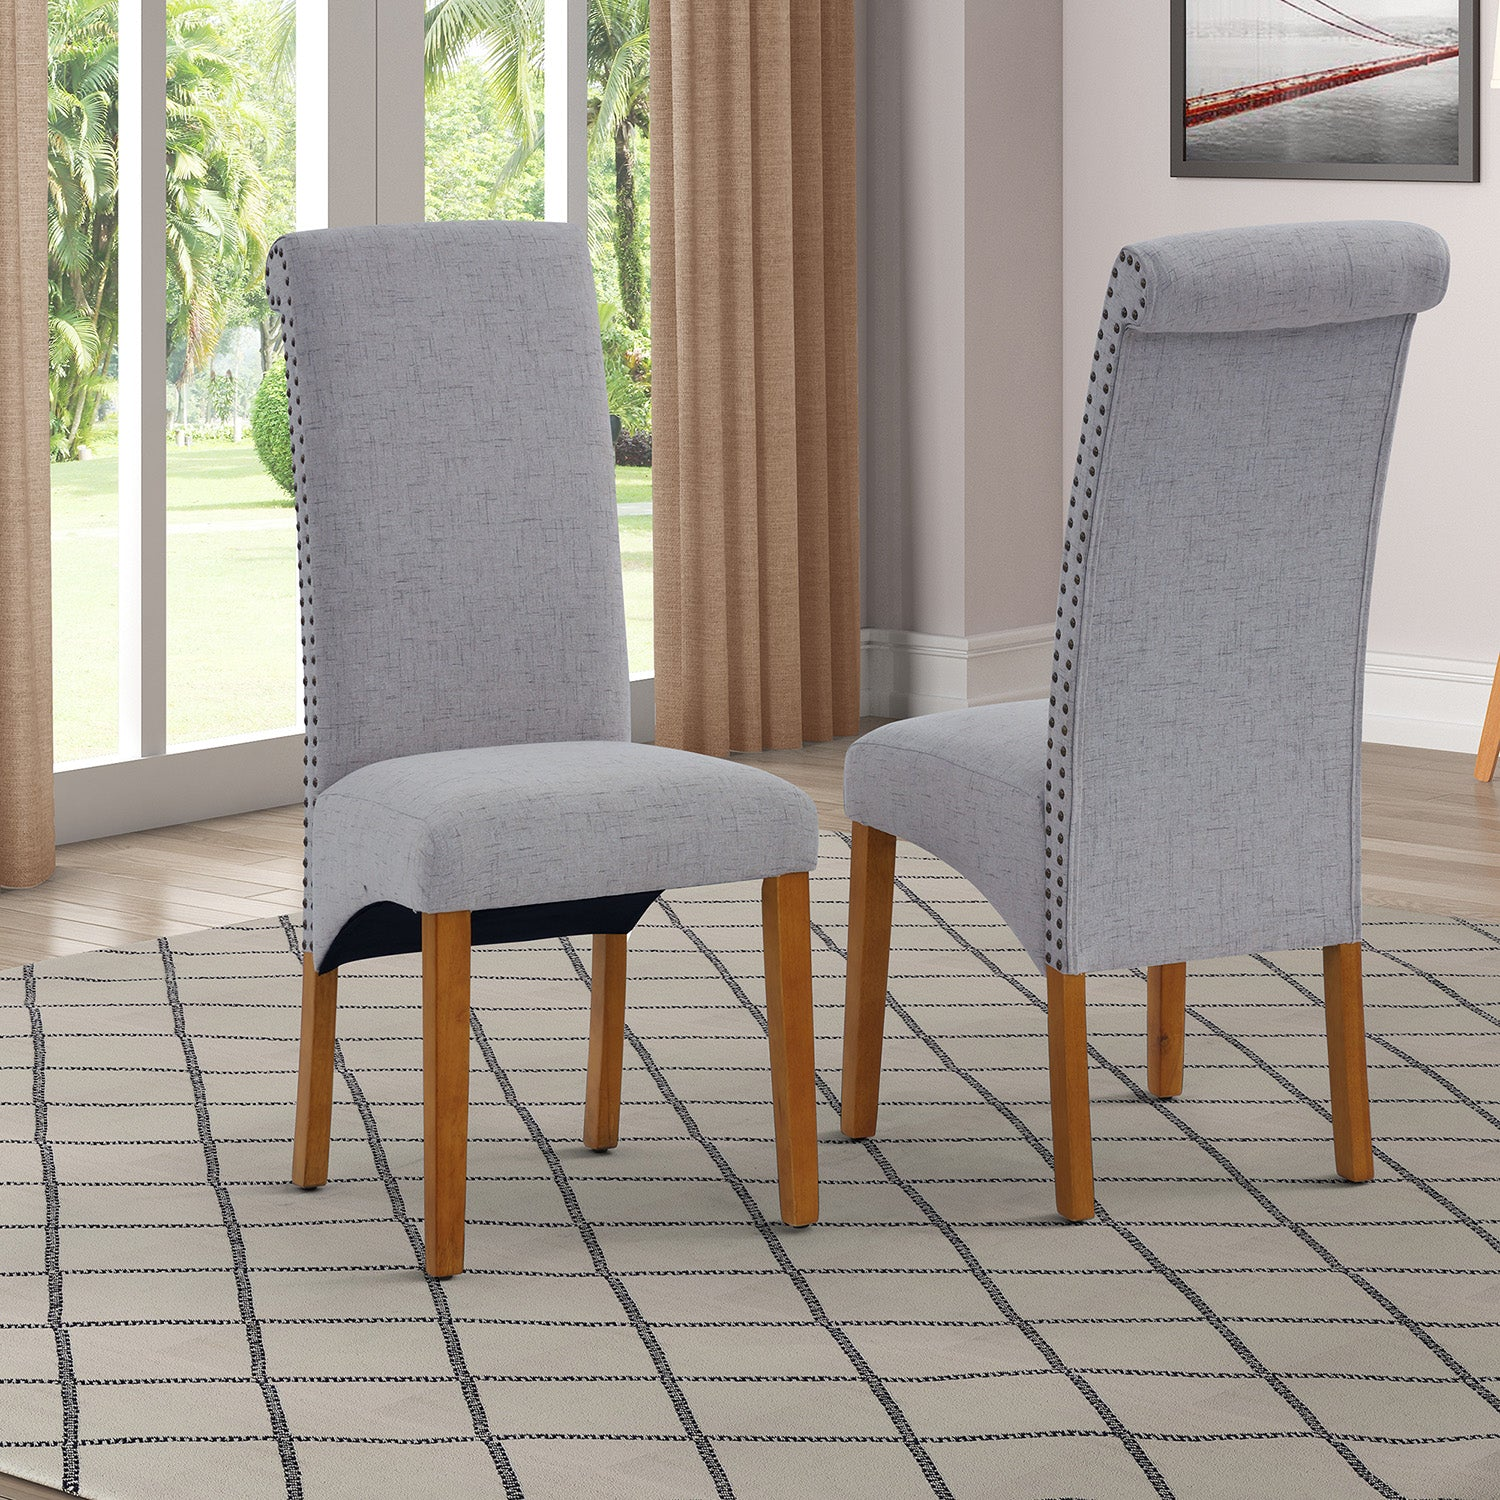 Dark Olive Green Dining Chair Set Fabric Padded Side Chair with Solid Wood Legs Nailed Trim Living Room BH486200